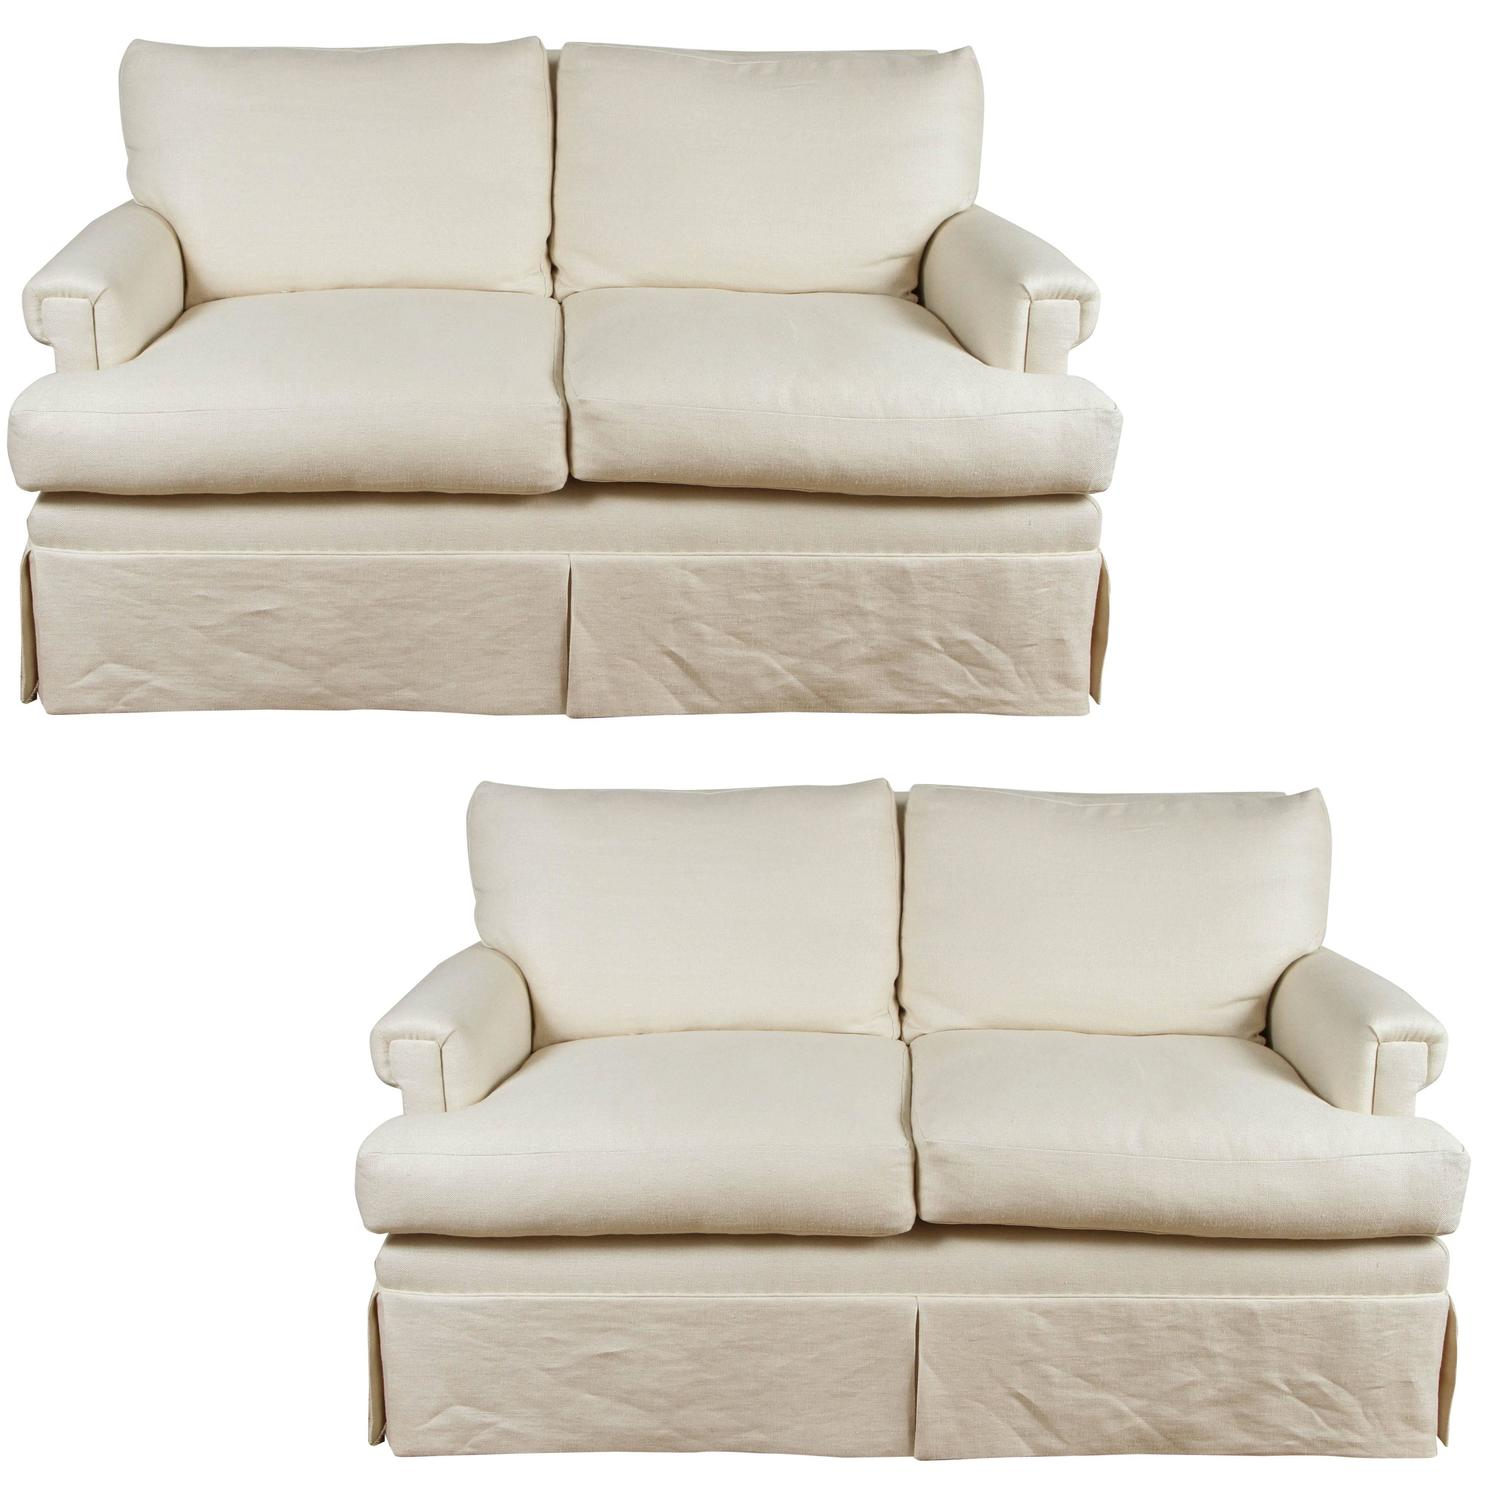 Ivory Loveseats For Sale At 1stdibs